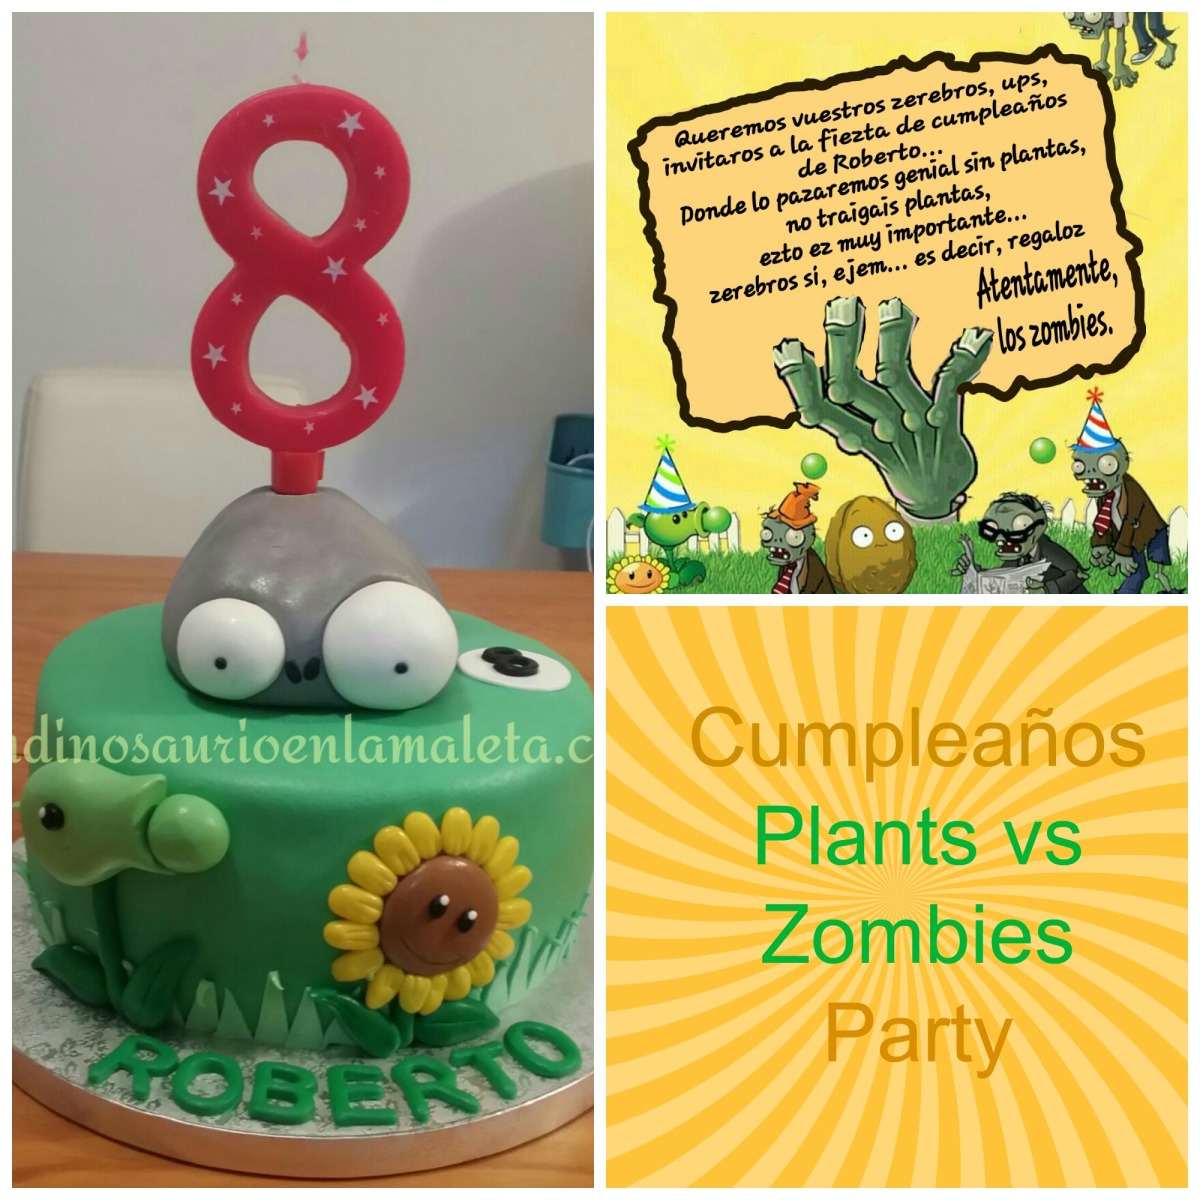 Cumpleanos Plantas Contra Zombies Plants Vs Zombies Party Un